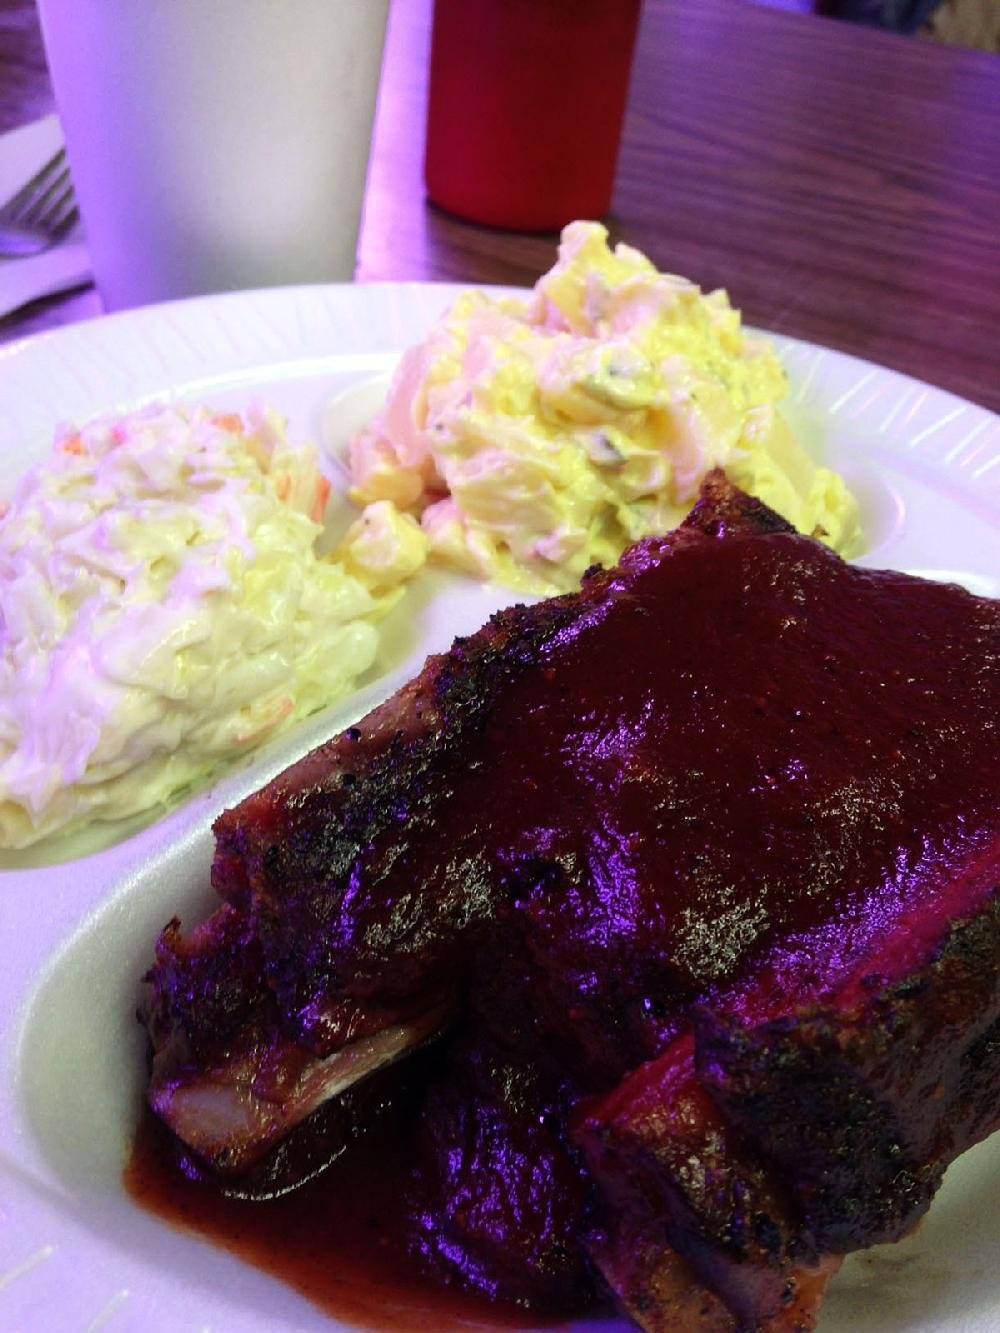 Ribs come slathered in H.B.'s tangy sauce.